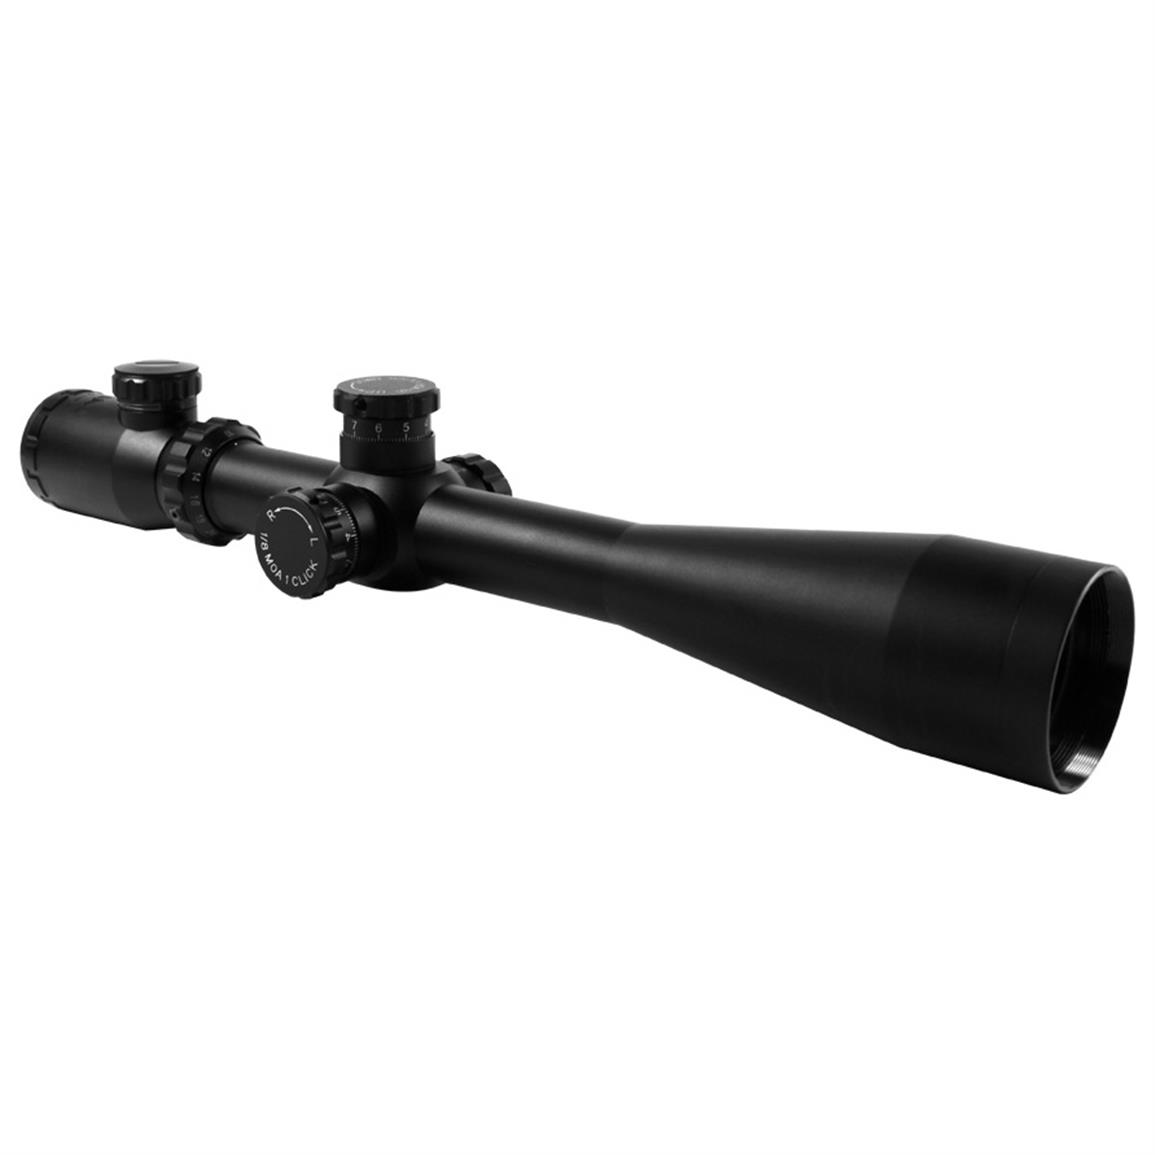 AIM Sports® 10-40x50mm Dual-Illuminated Rifle Scope with Side Parallax, Mil-Dot Reticle